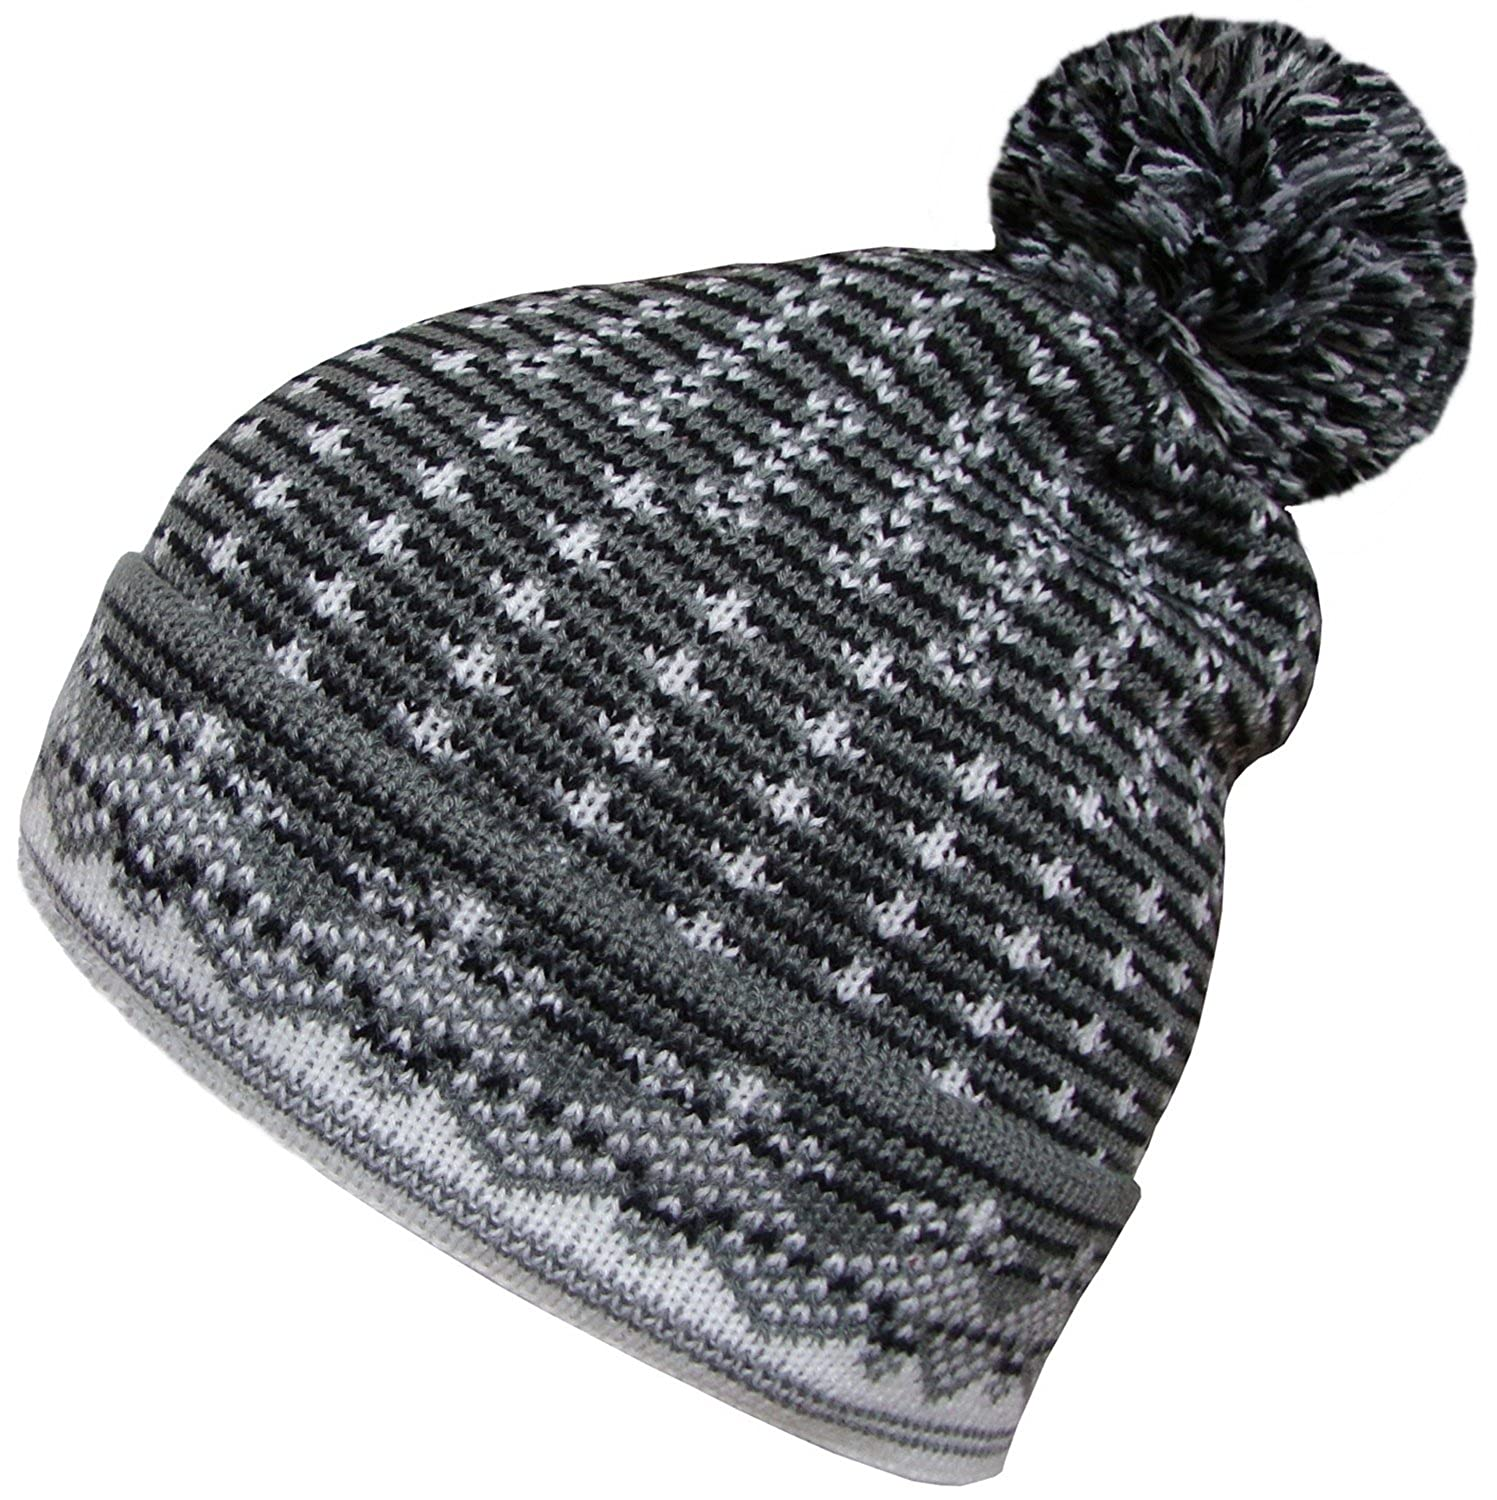 d5382c974 Mens Womens Oversized Beanies Winter Wooly Slouch Beanie Hat with ...